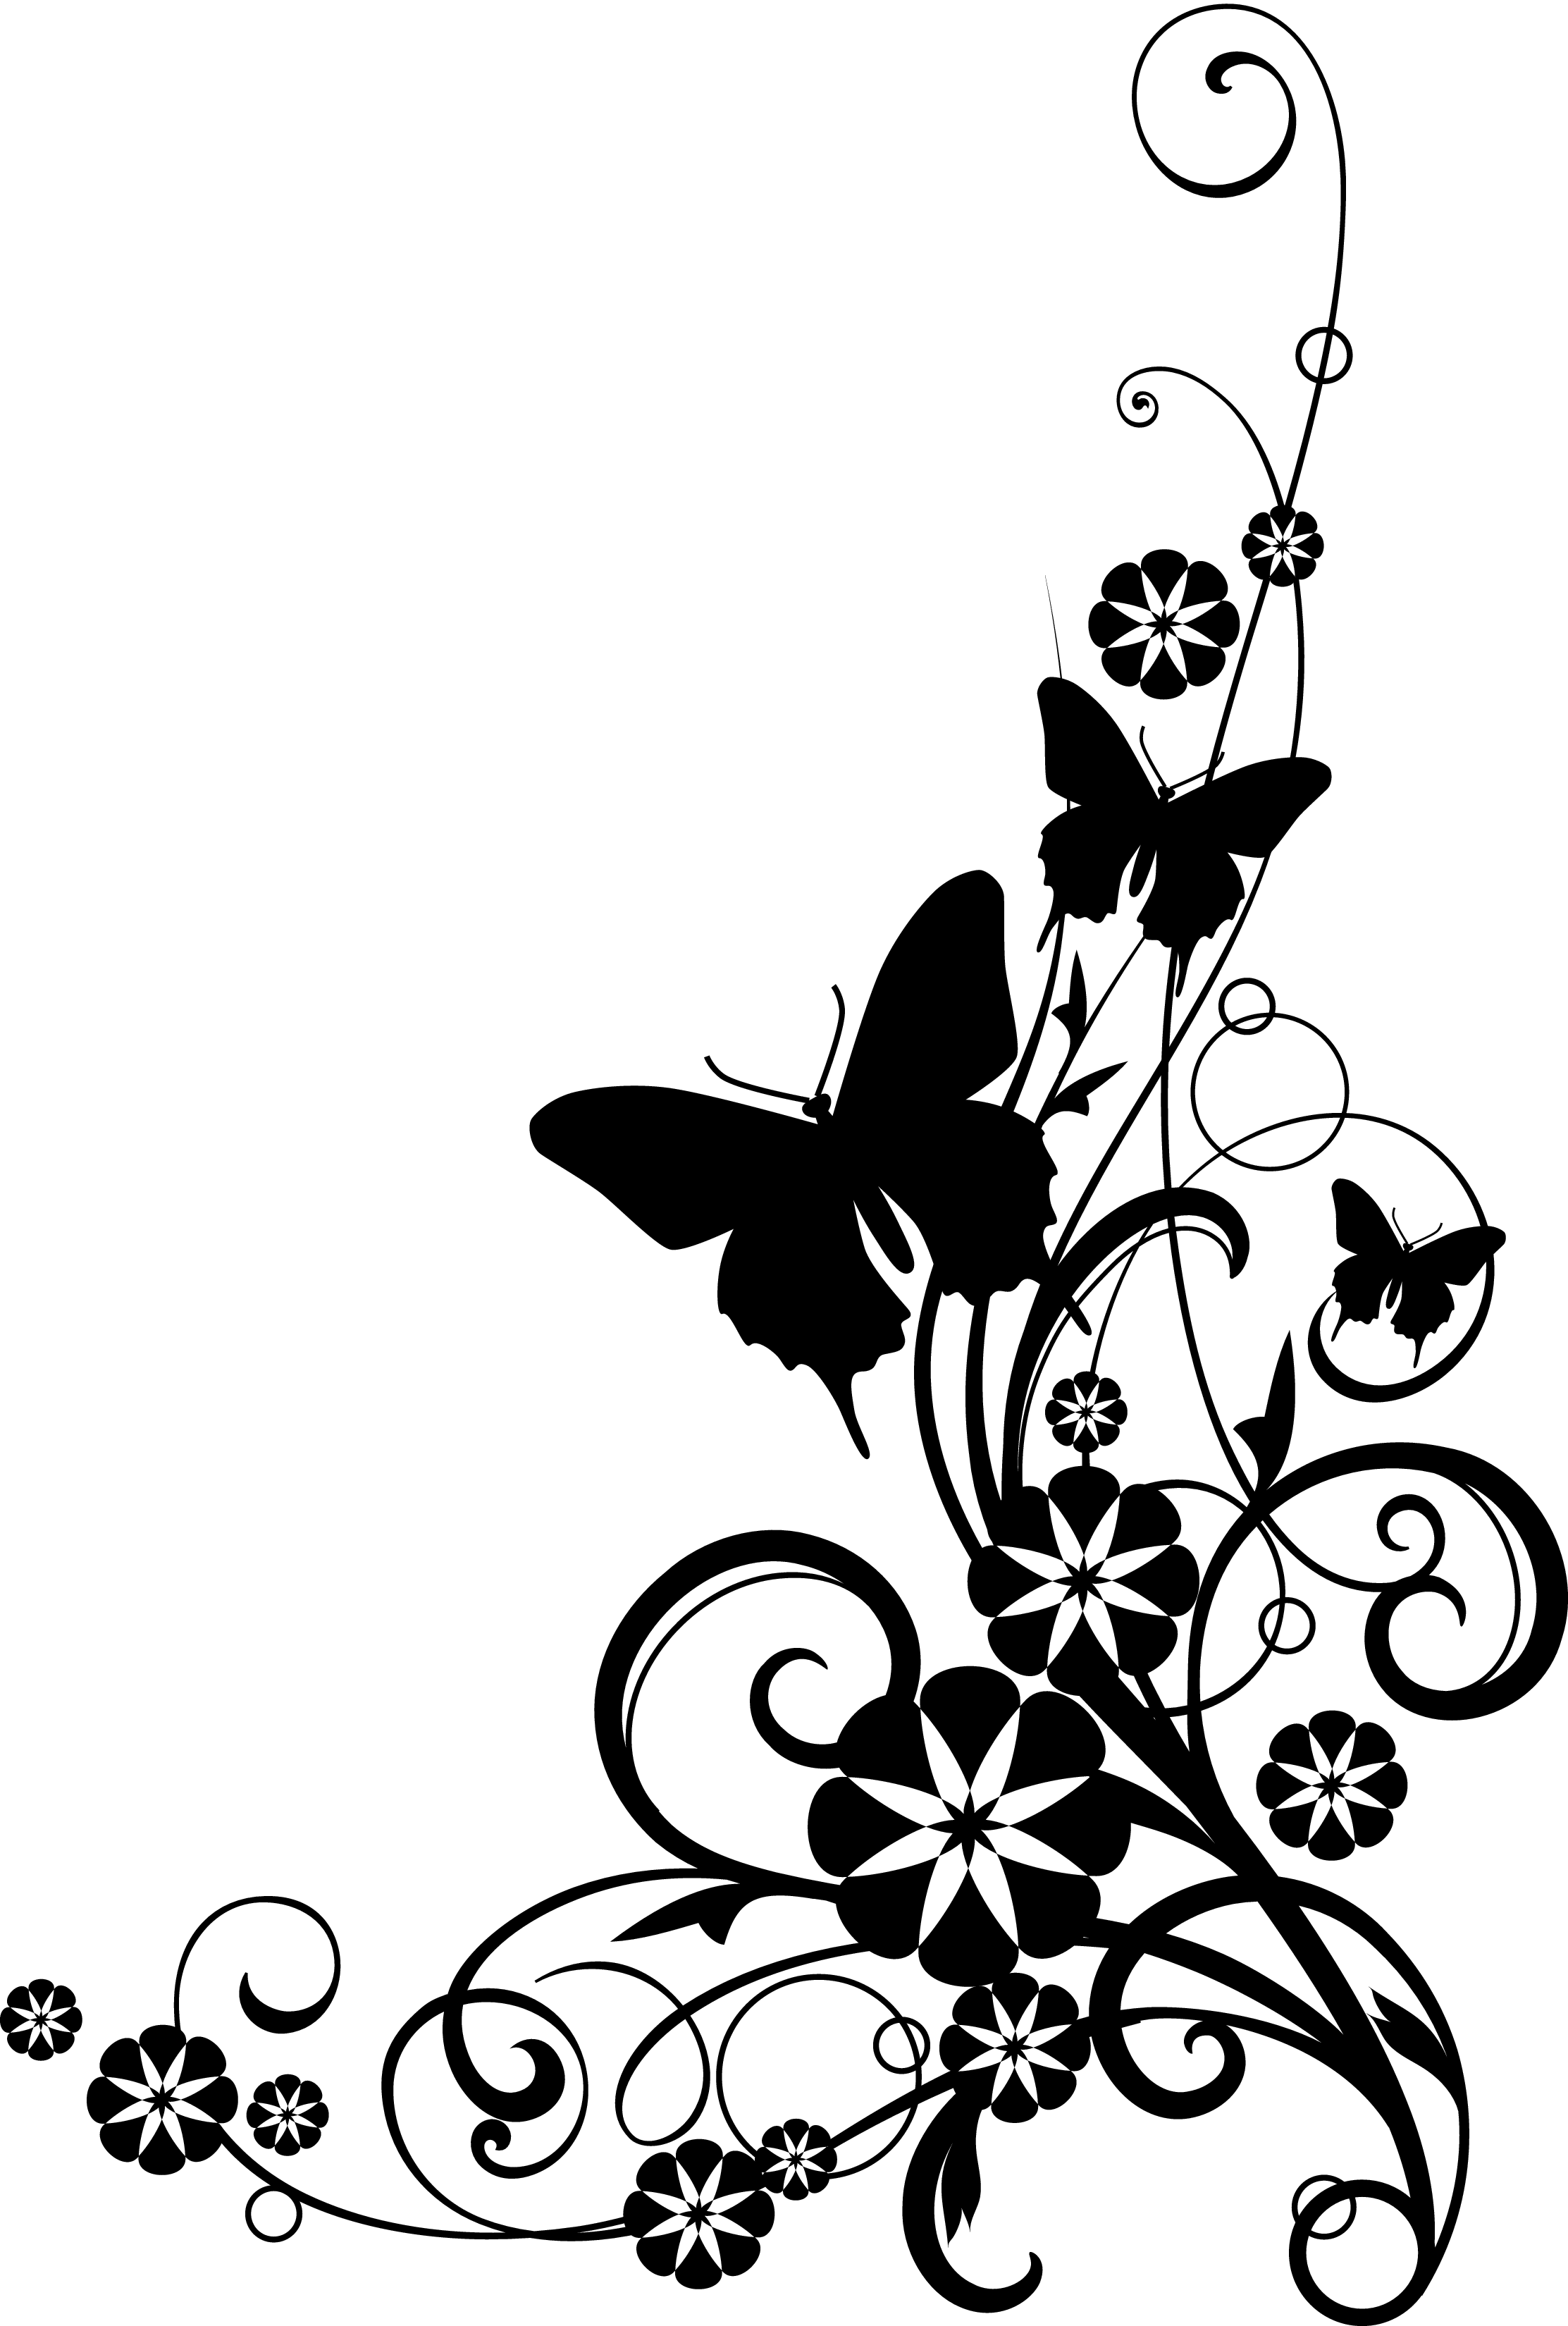 Flower vines clipart image royalty free Vine Clipart Black And White | Clipart Panda - Free Clipart Images image royalty free